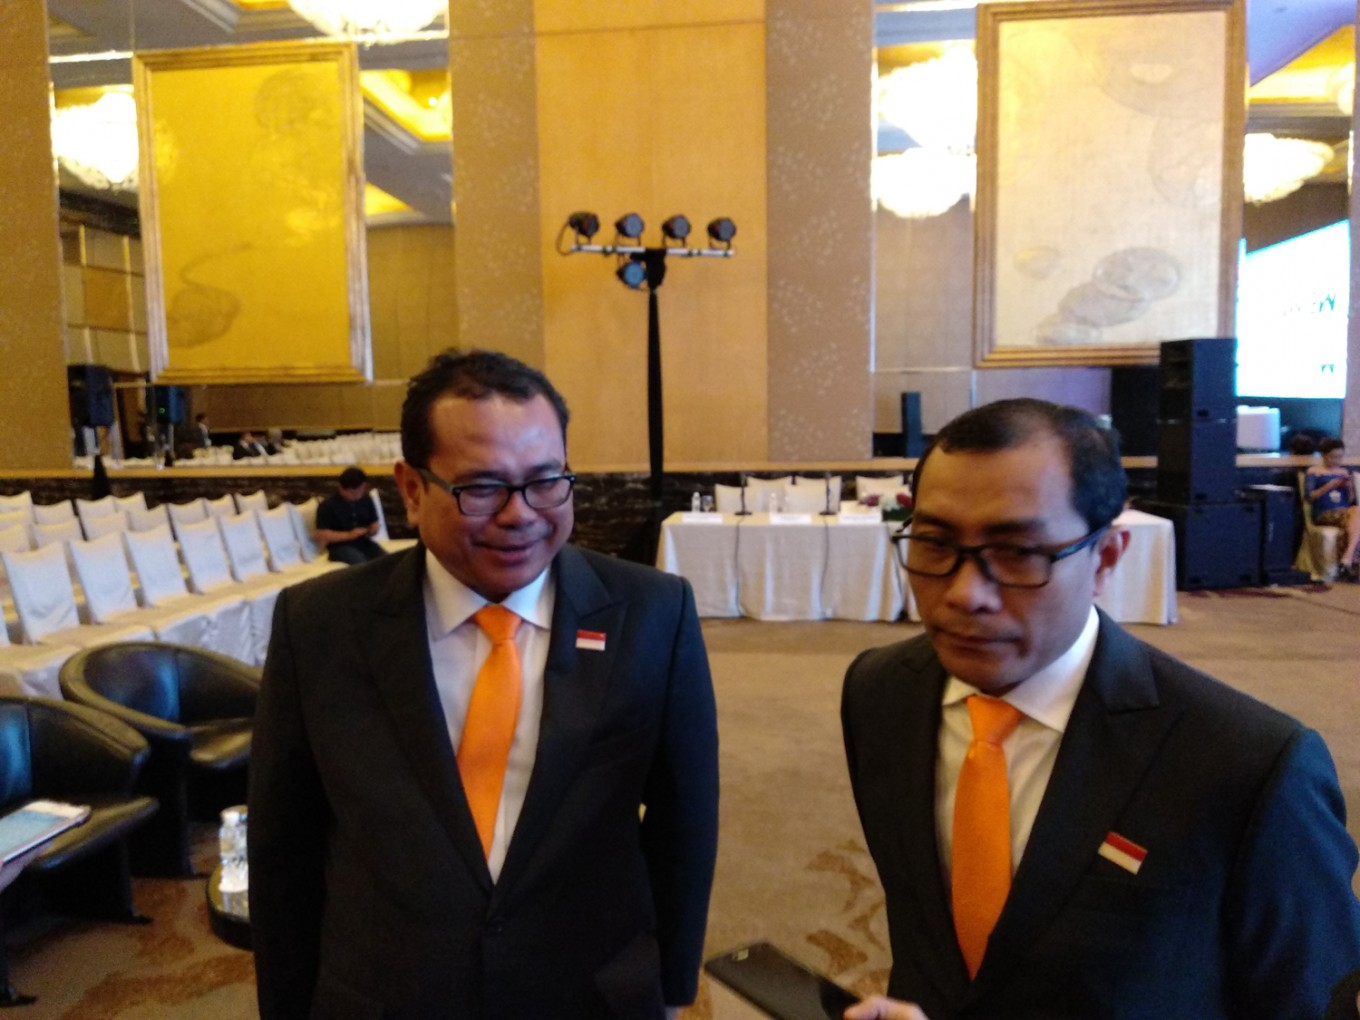 Indonesia Kendaraan Terminal eyes Rp 1 trillion from IPO